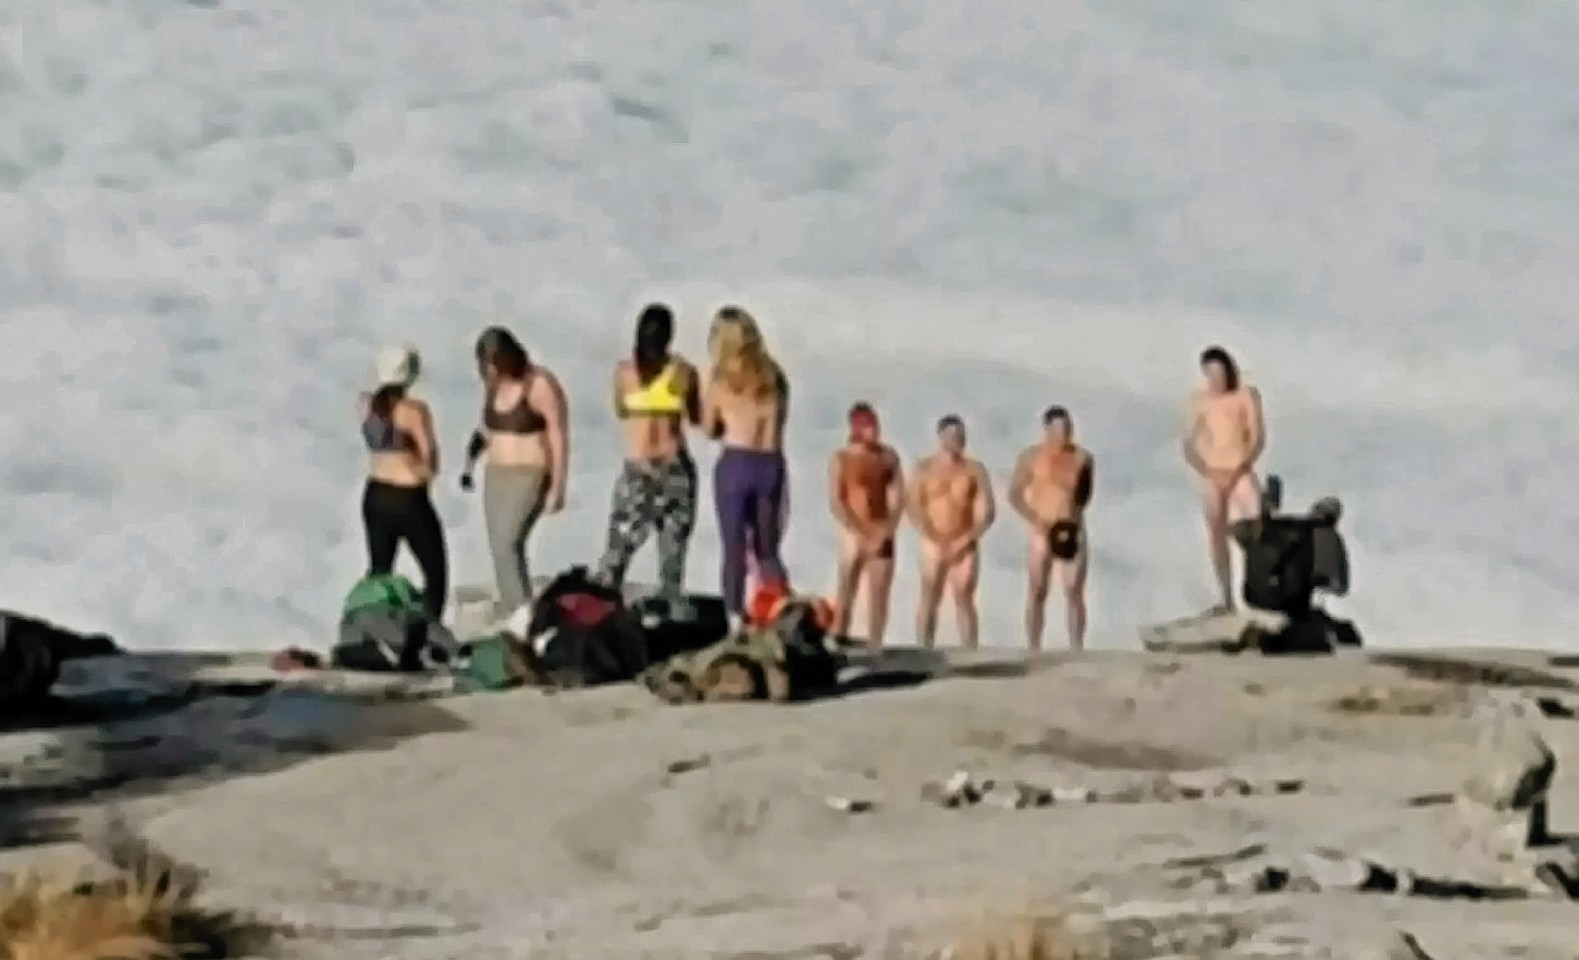 The group of tourists allegedly stripped naked before taking pictures on a mountain peak.